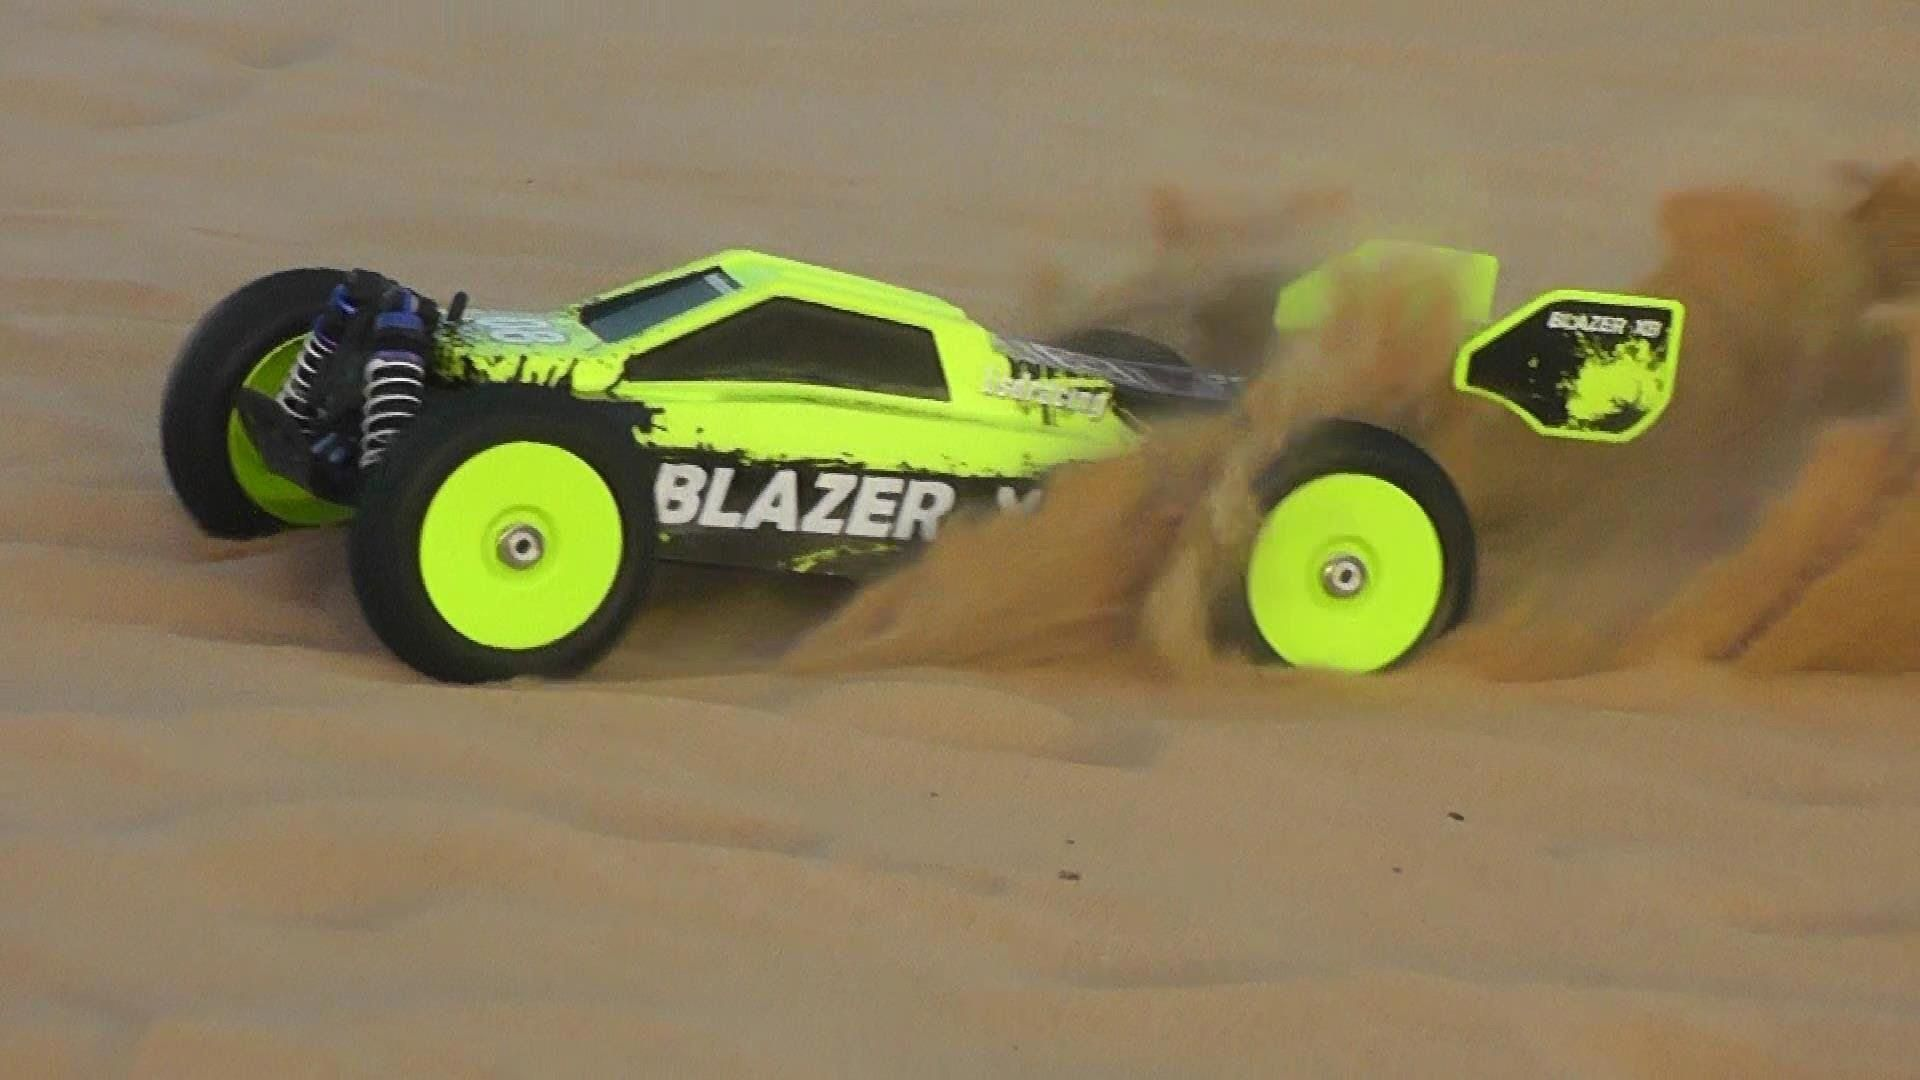 Blazer XB RC 4WD Electric Buggy Sand Bashing to a New Level